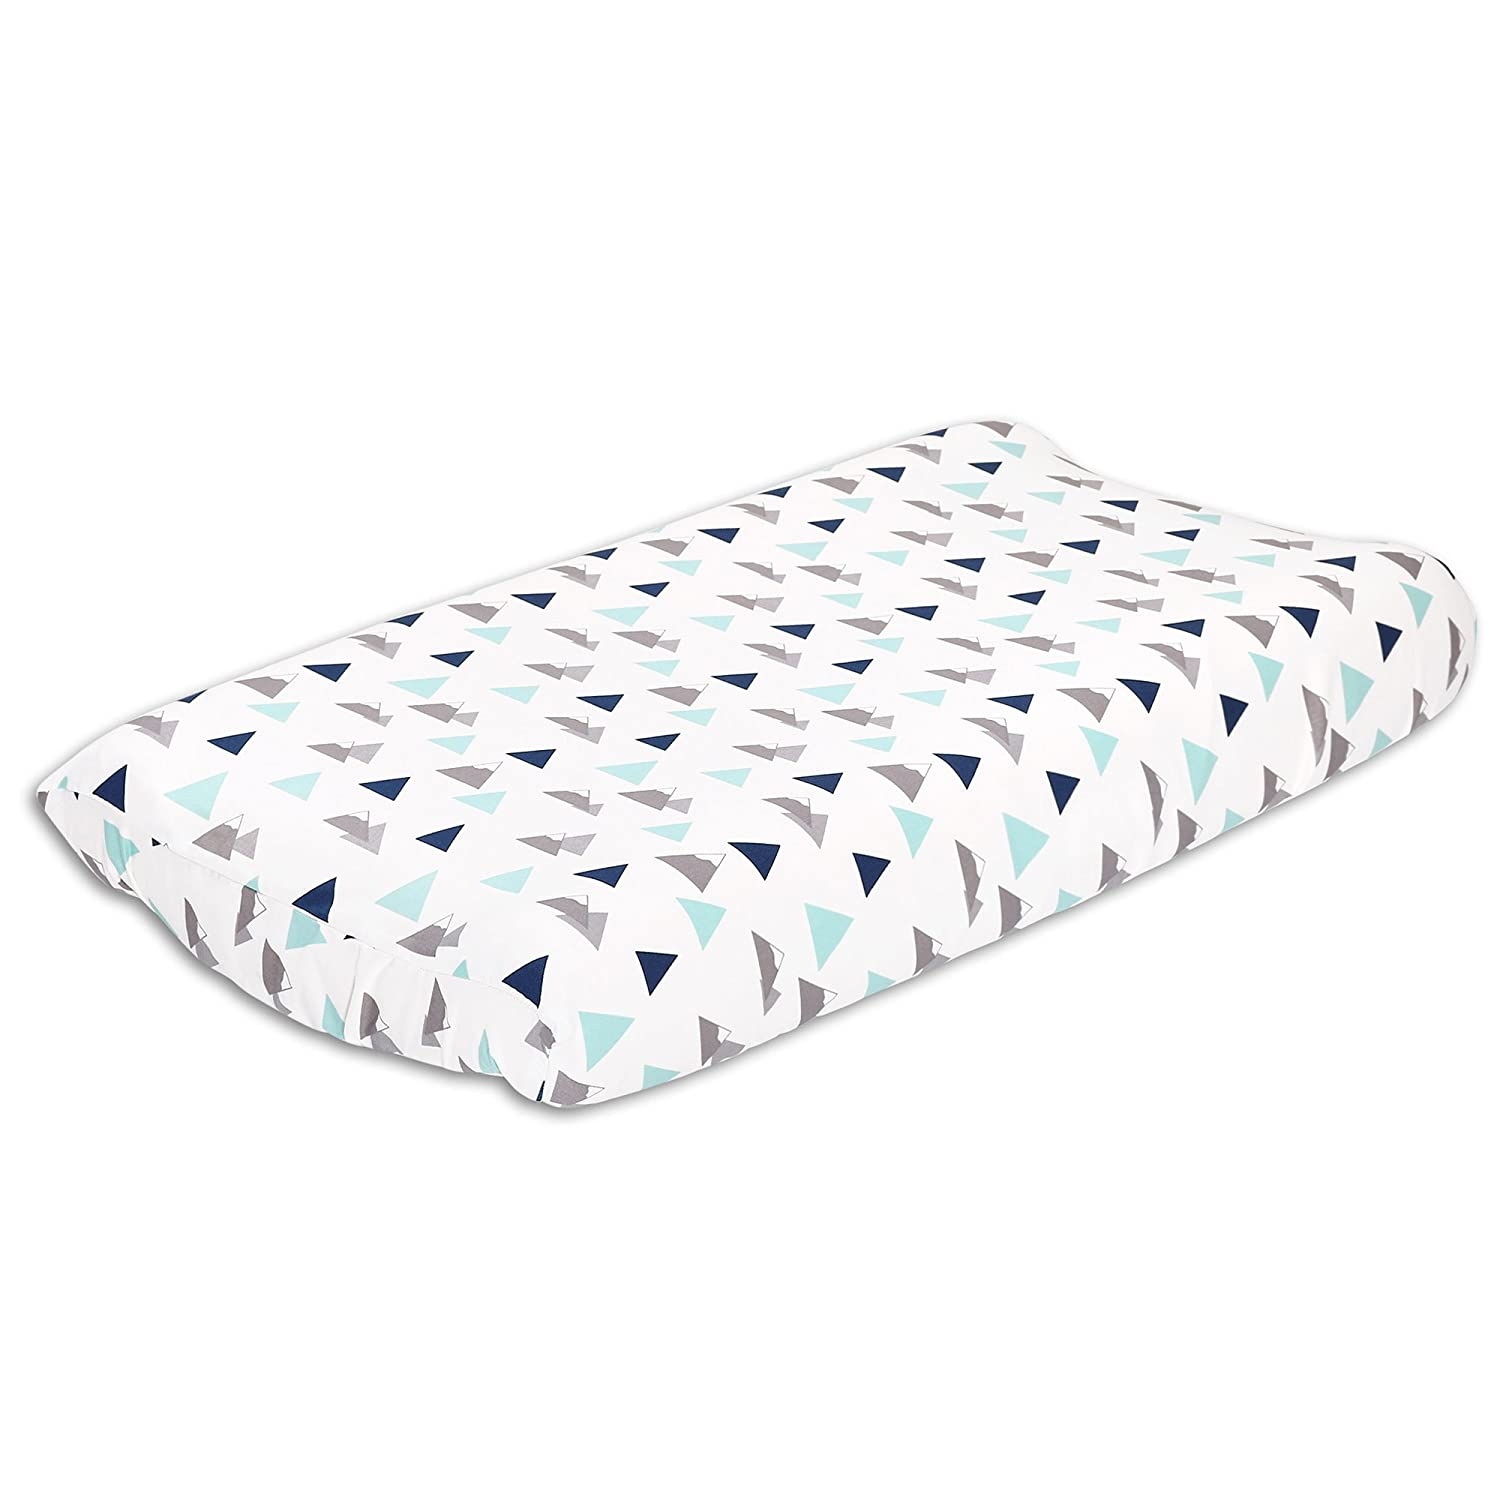 Woodland Trail Mountain Theme Changing Pad Cover by The Peanut Shell Farallon Brands CPMTMU